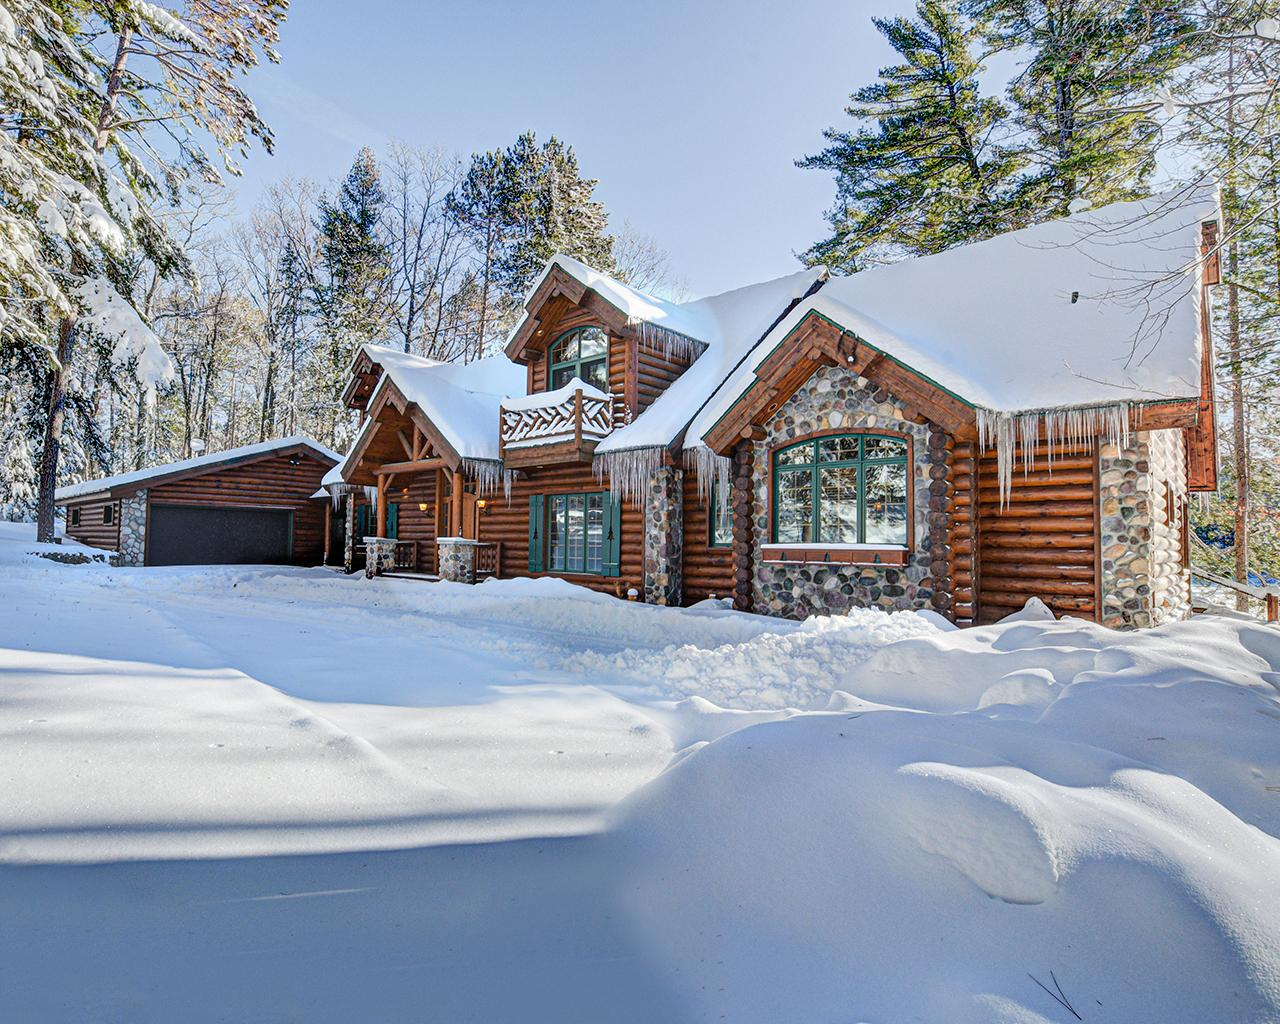 STUNNING log-sided beauty perched on 295' of level sand frontage on the incomparable 3-Lakes/Eagle River Chain of 28 lakes! Tucked in the woods, this majestic home offers loads of Northwoods flair & appeal! Gourmet kitchen w/Viking, Sub Zero & Bosch appliances, granite tops, dbl-sided stone FP, log-beamed wood ceilings, hand carved banister & mantle, lakeside master suite w/his n her vanity & shower heads, & stylish claw tub. The loft has incredible lake views & there are high-end finishes everywhere the eye can see! Finished LL w/a spacious laundry room & custom sauna. There's surround sound, a security system & the covered front porch is in close proximity to the water. Landscaped grounds w/an irrigation system & a beautiful winding blacktop drive. The garage is insulated & has a workshop w/wood heat. At water's edge is a dry boathouse w/electric rail system & a permanent pier system w/covered boatlift. This is a special property waiting for its next special owners, will it be you?